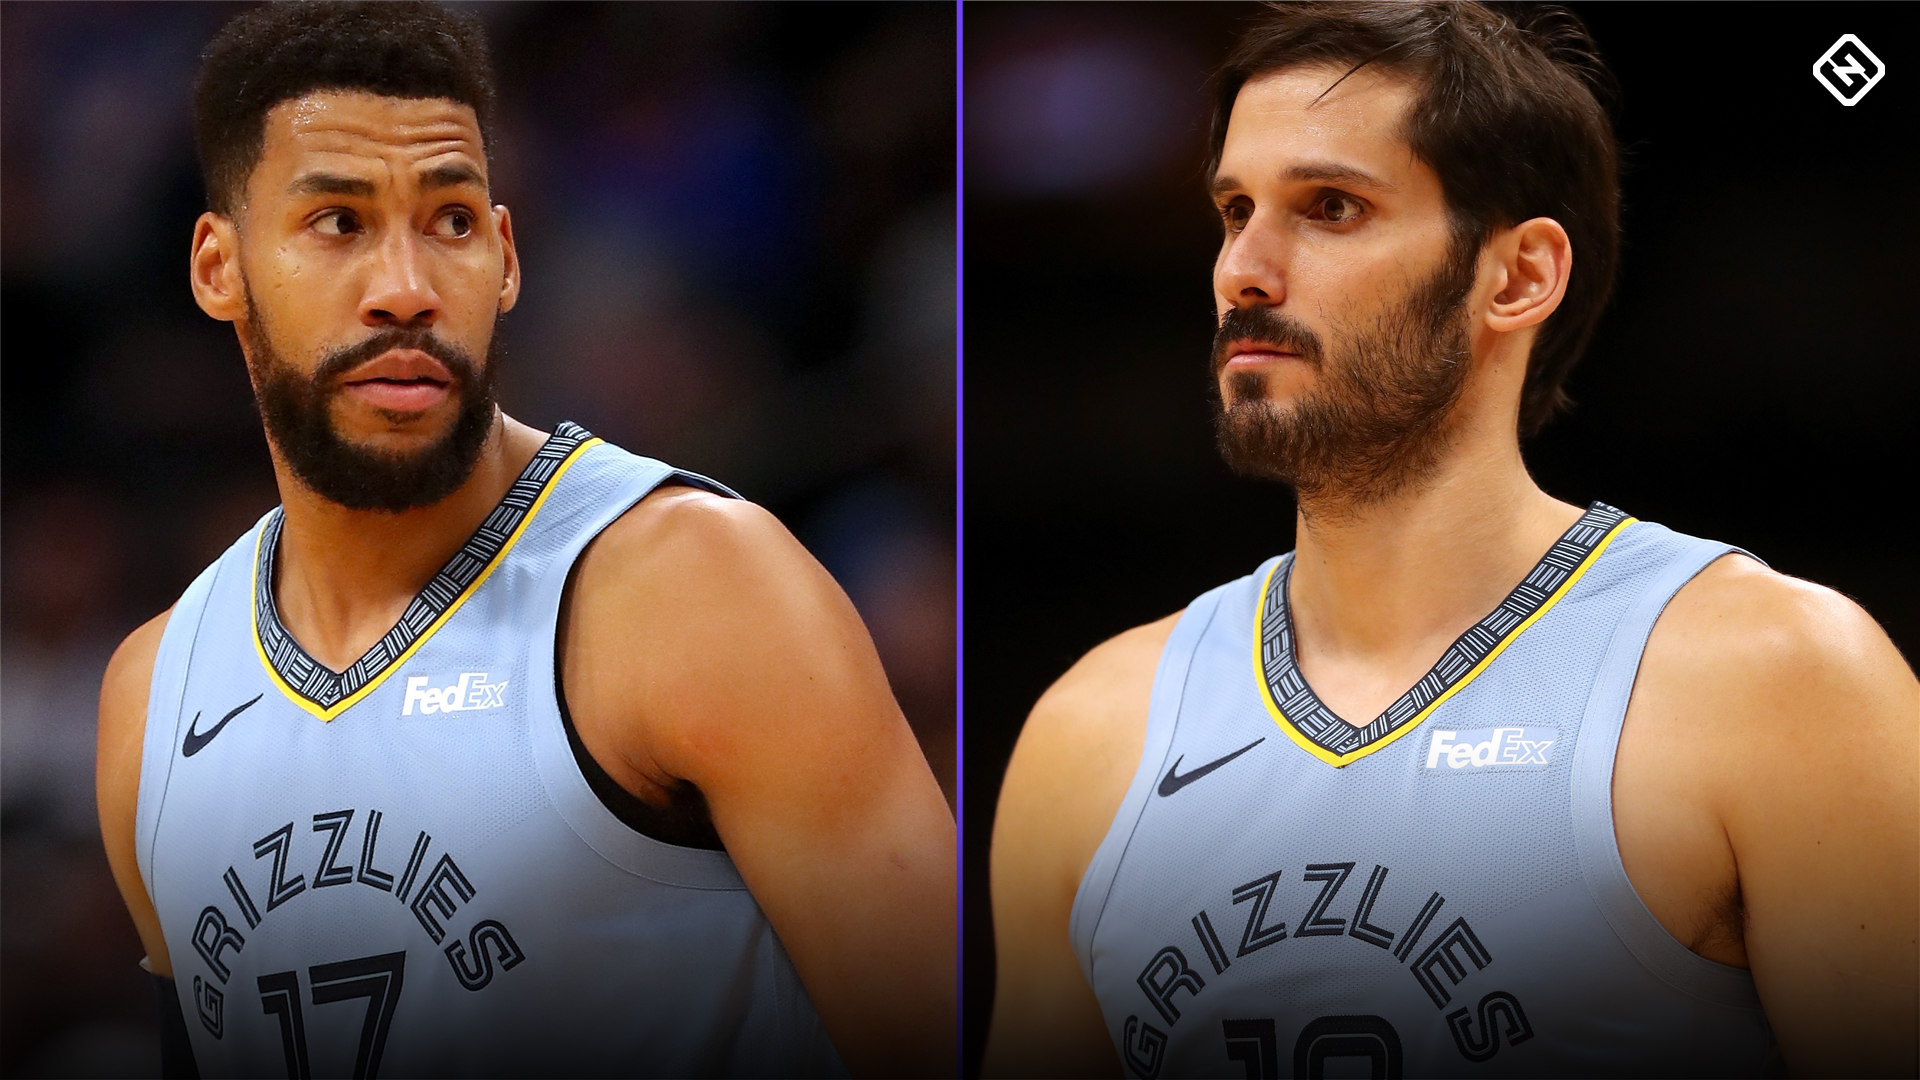 Grizzlies' frustrations lead to 'altercation' between Garrett Temple, Omri Casspi, report says